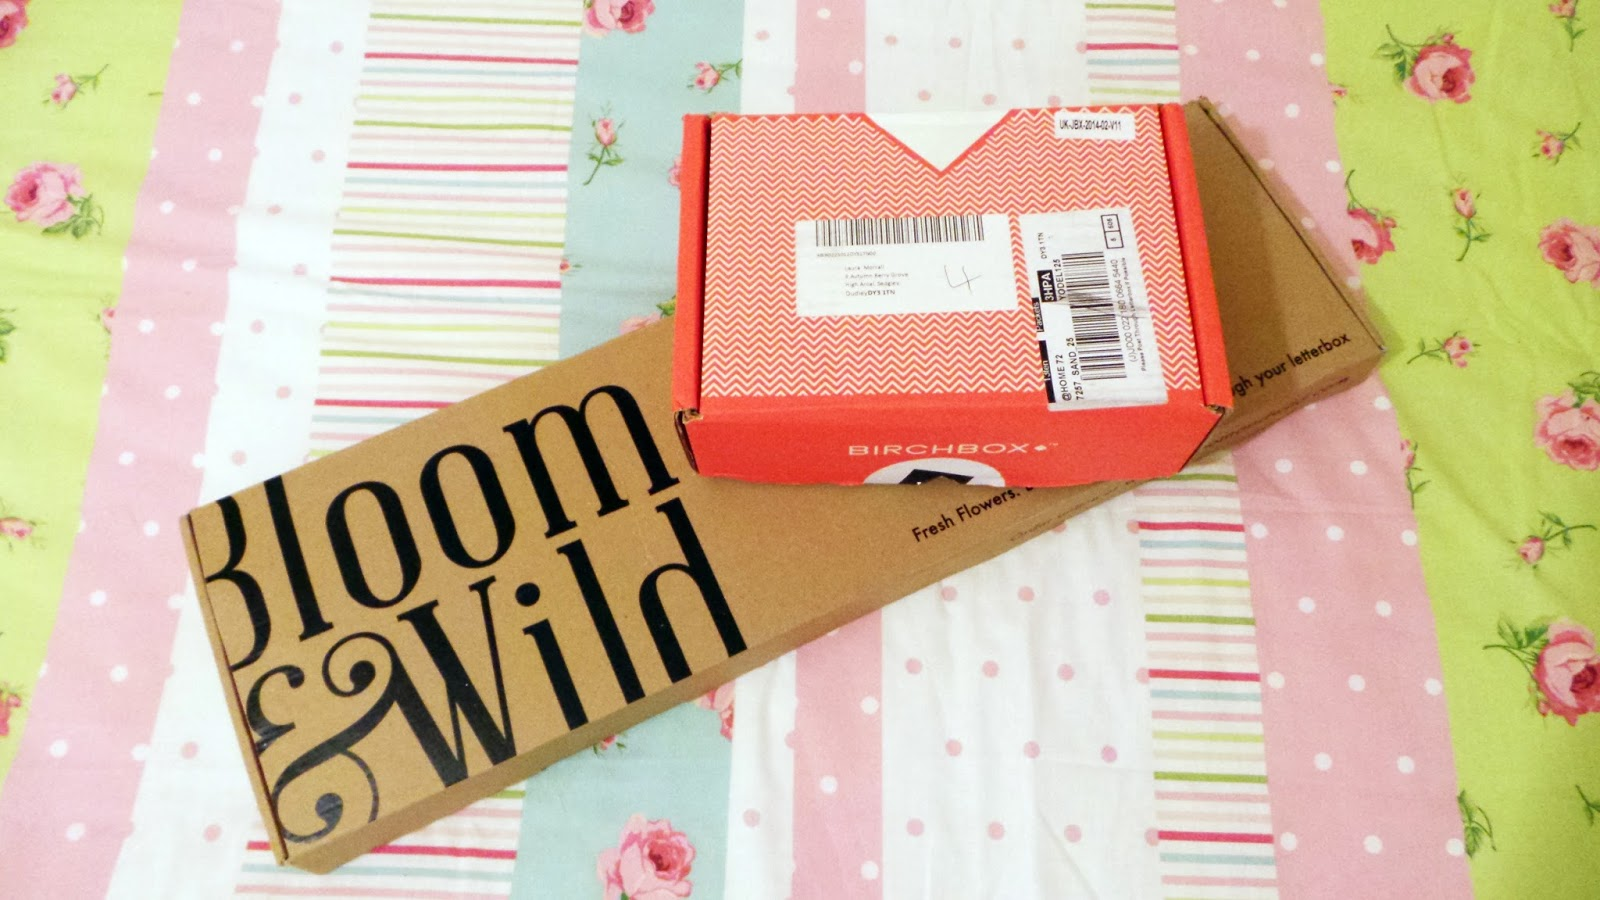 Birchbox Bloom & Wild Monthly Subscription, beauty box review, beauty box subscription, birchbox review, bloom & wild review, flowers by post, flower delivery,